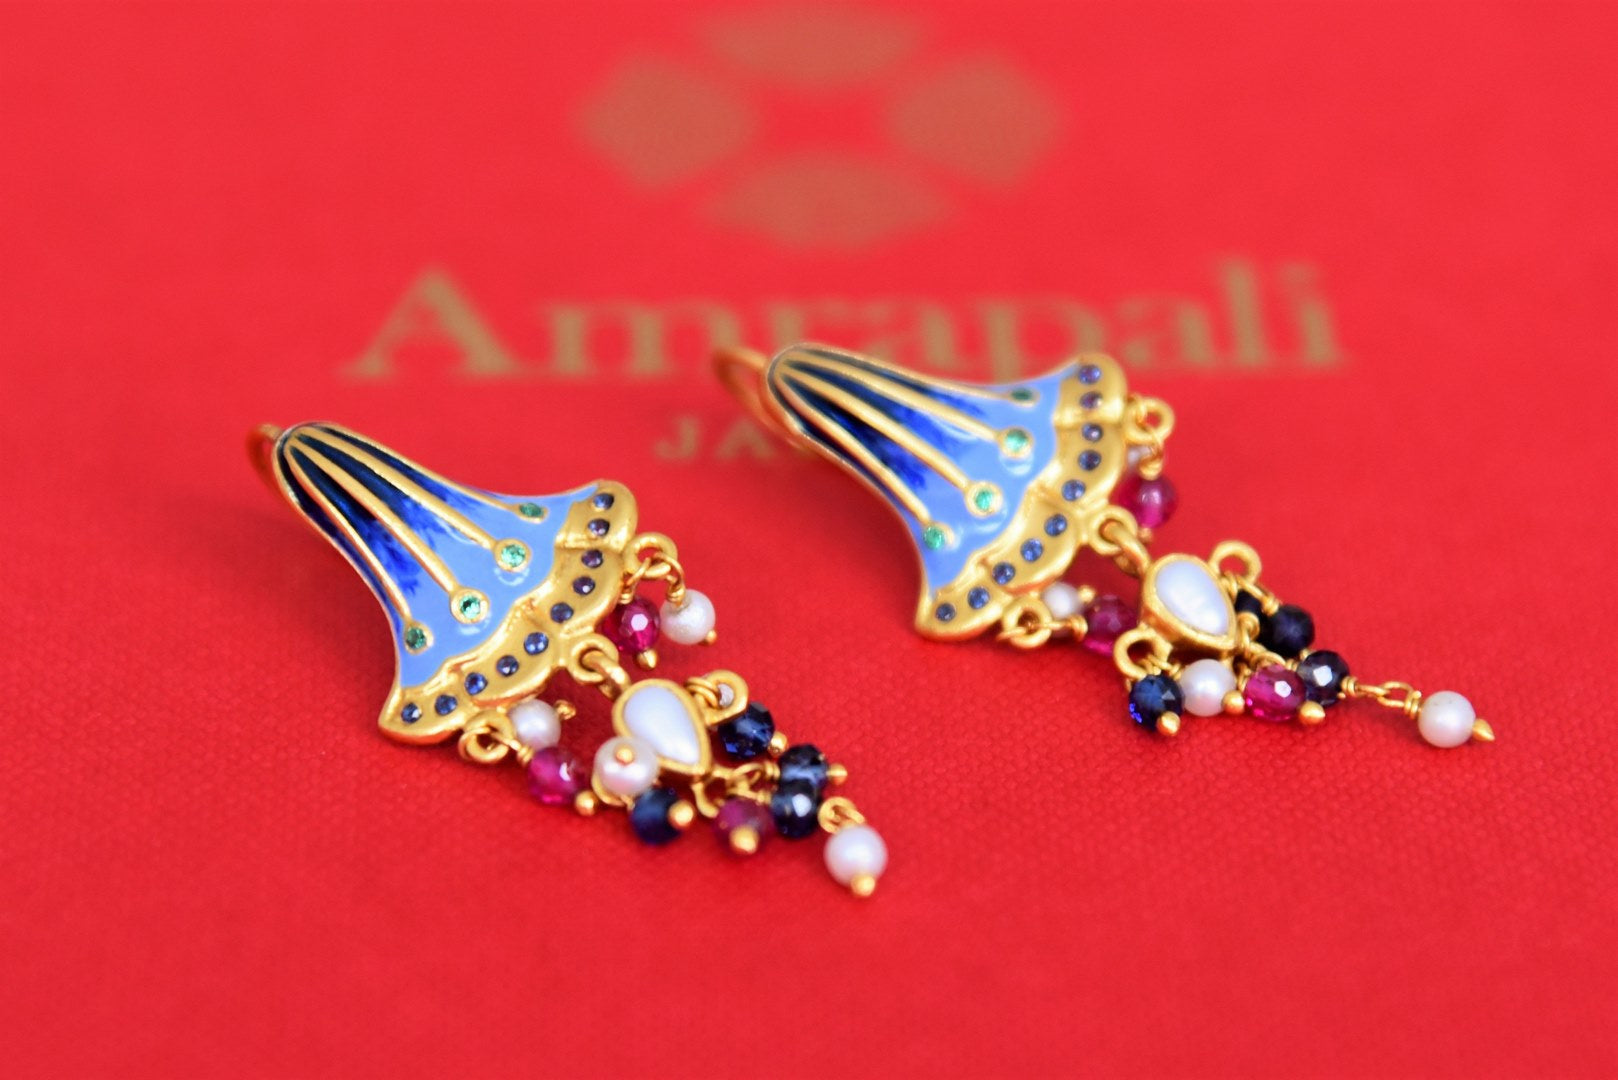 20B969 Silver Gold Plated Enamel Earrings with Blue Bell Design